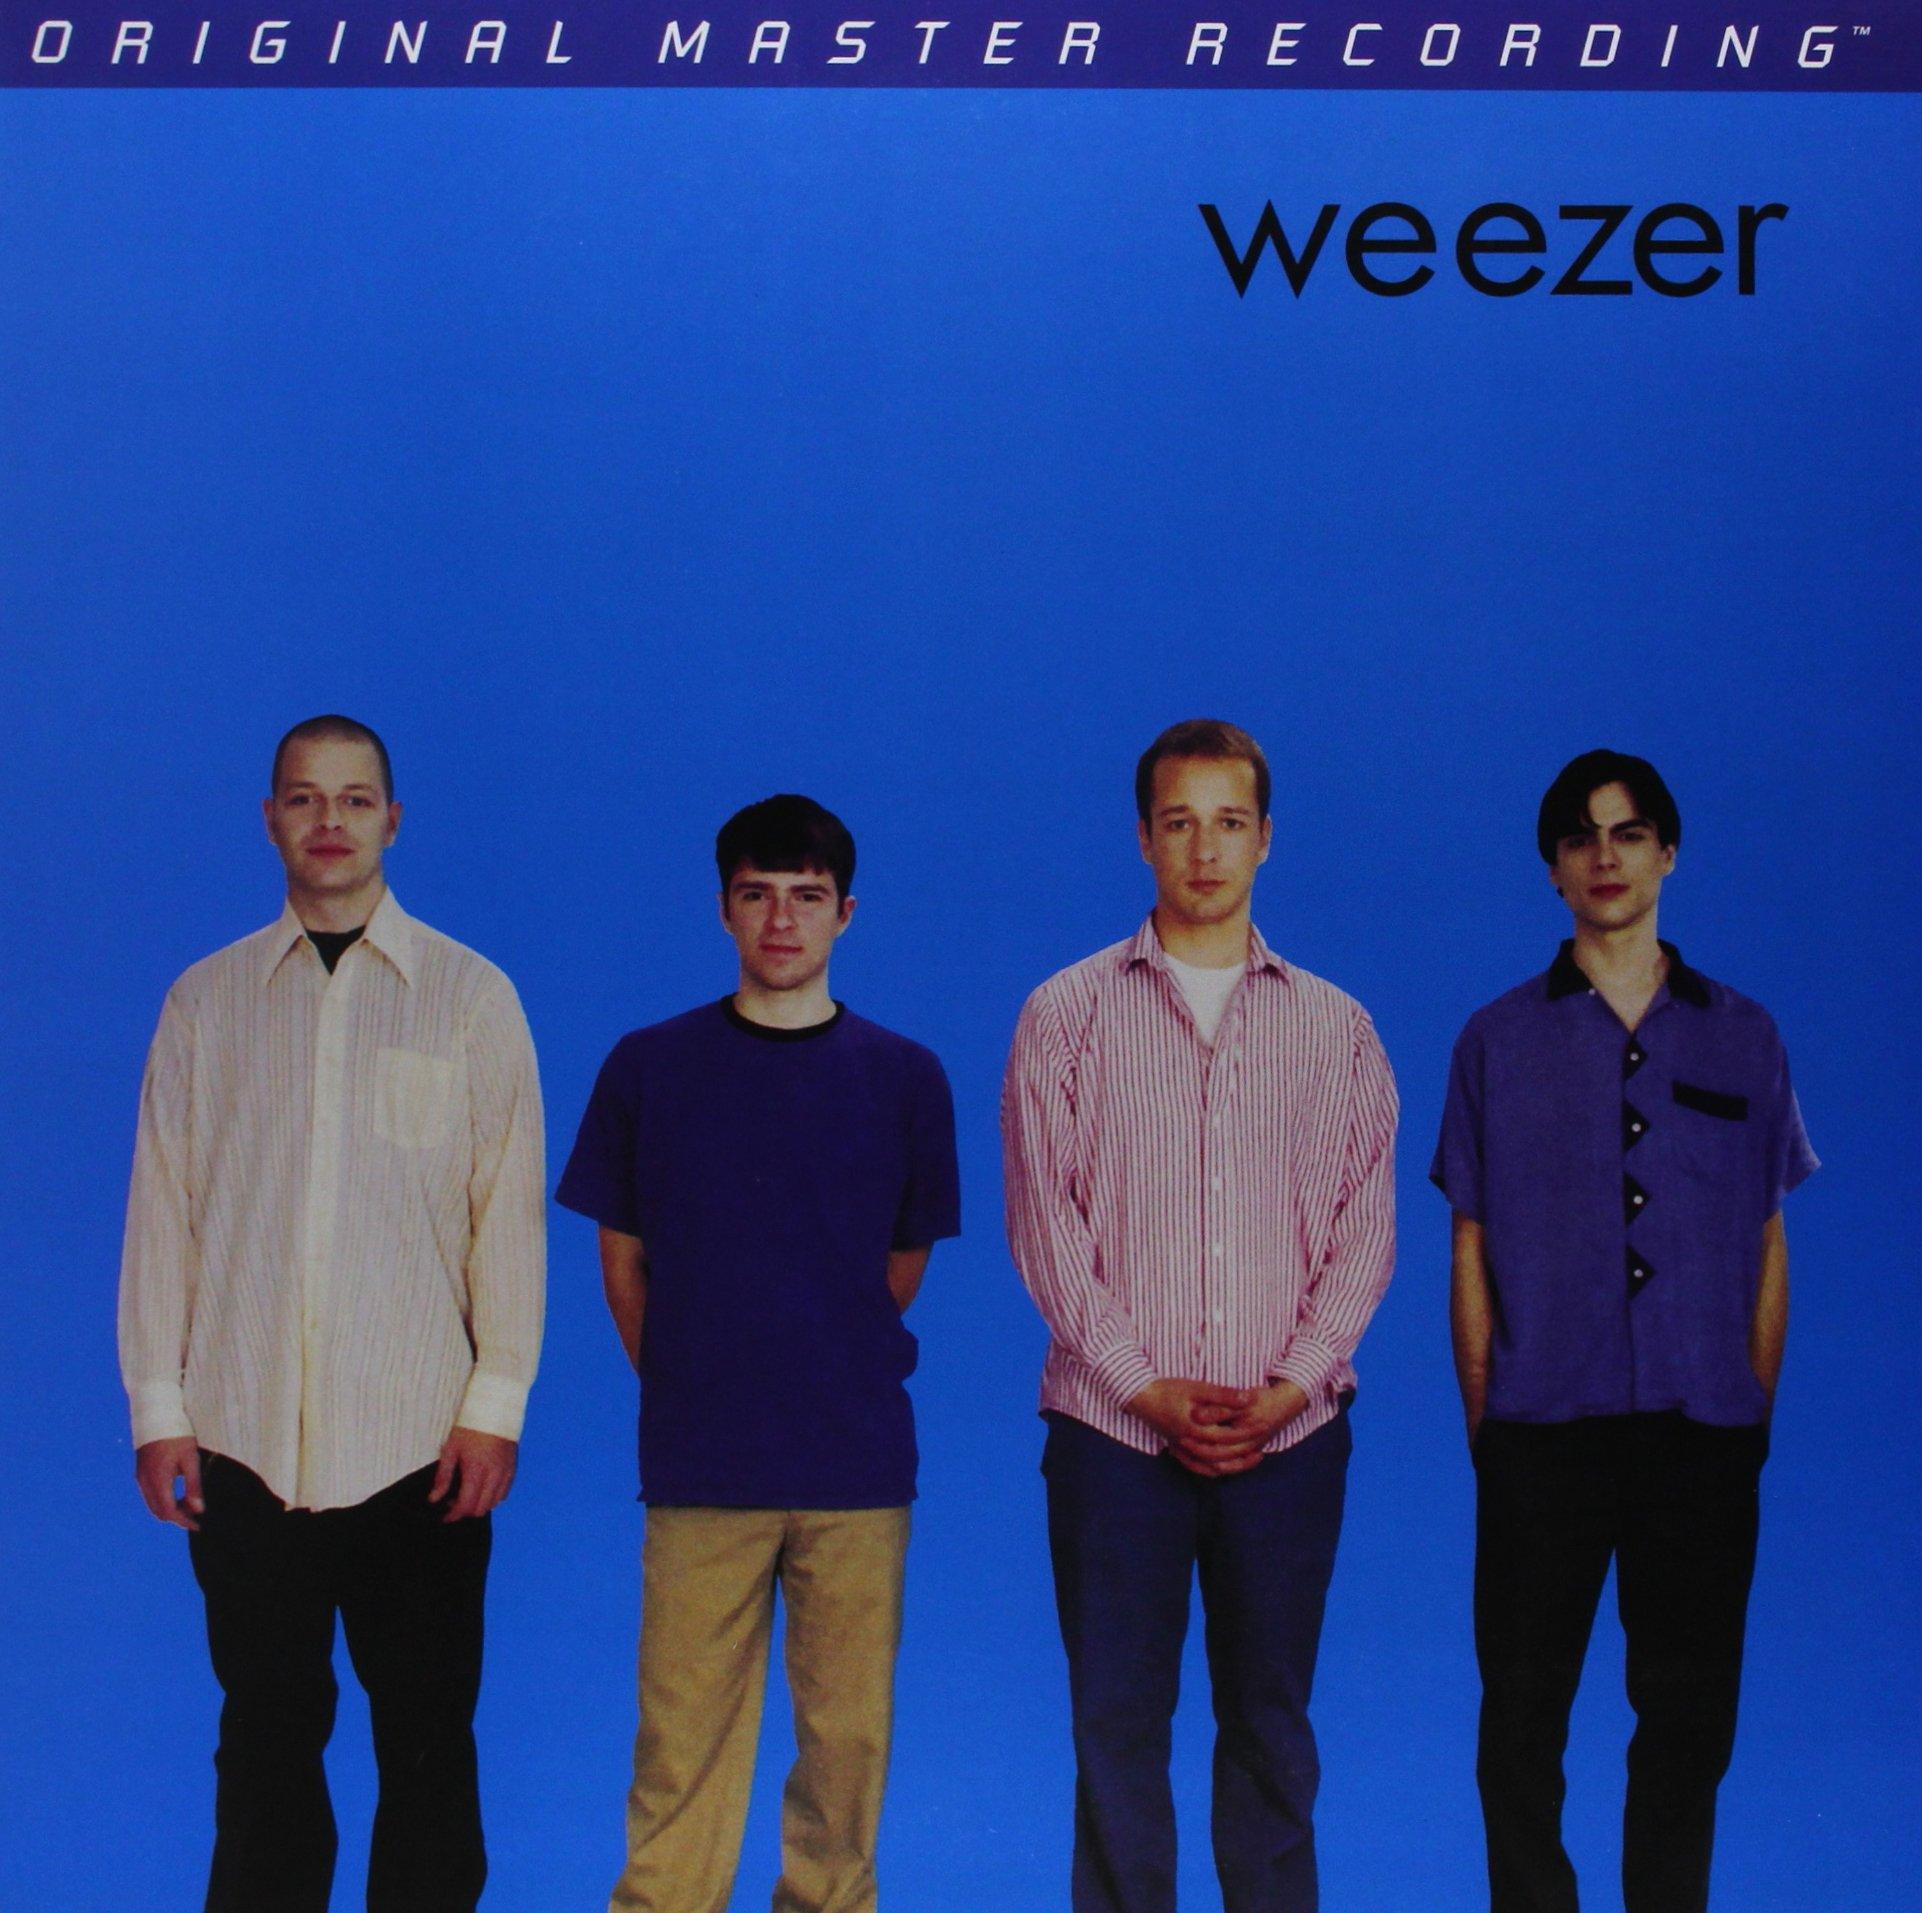 Weezer ( Blue Album ) by Mobile Fidelity